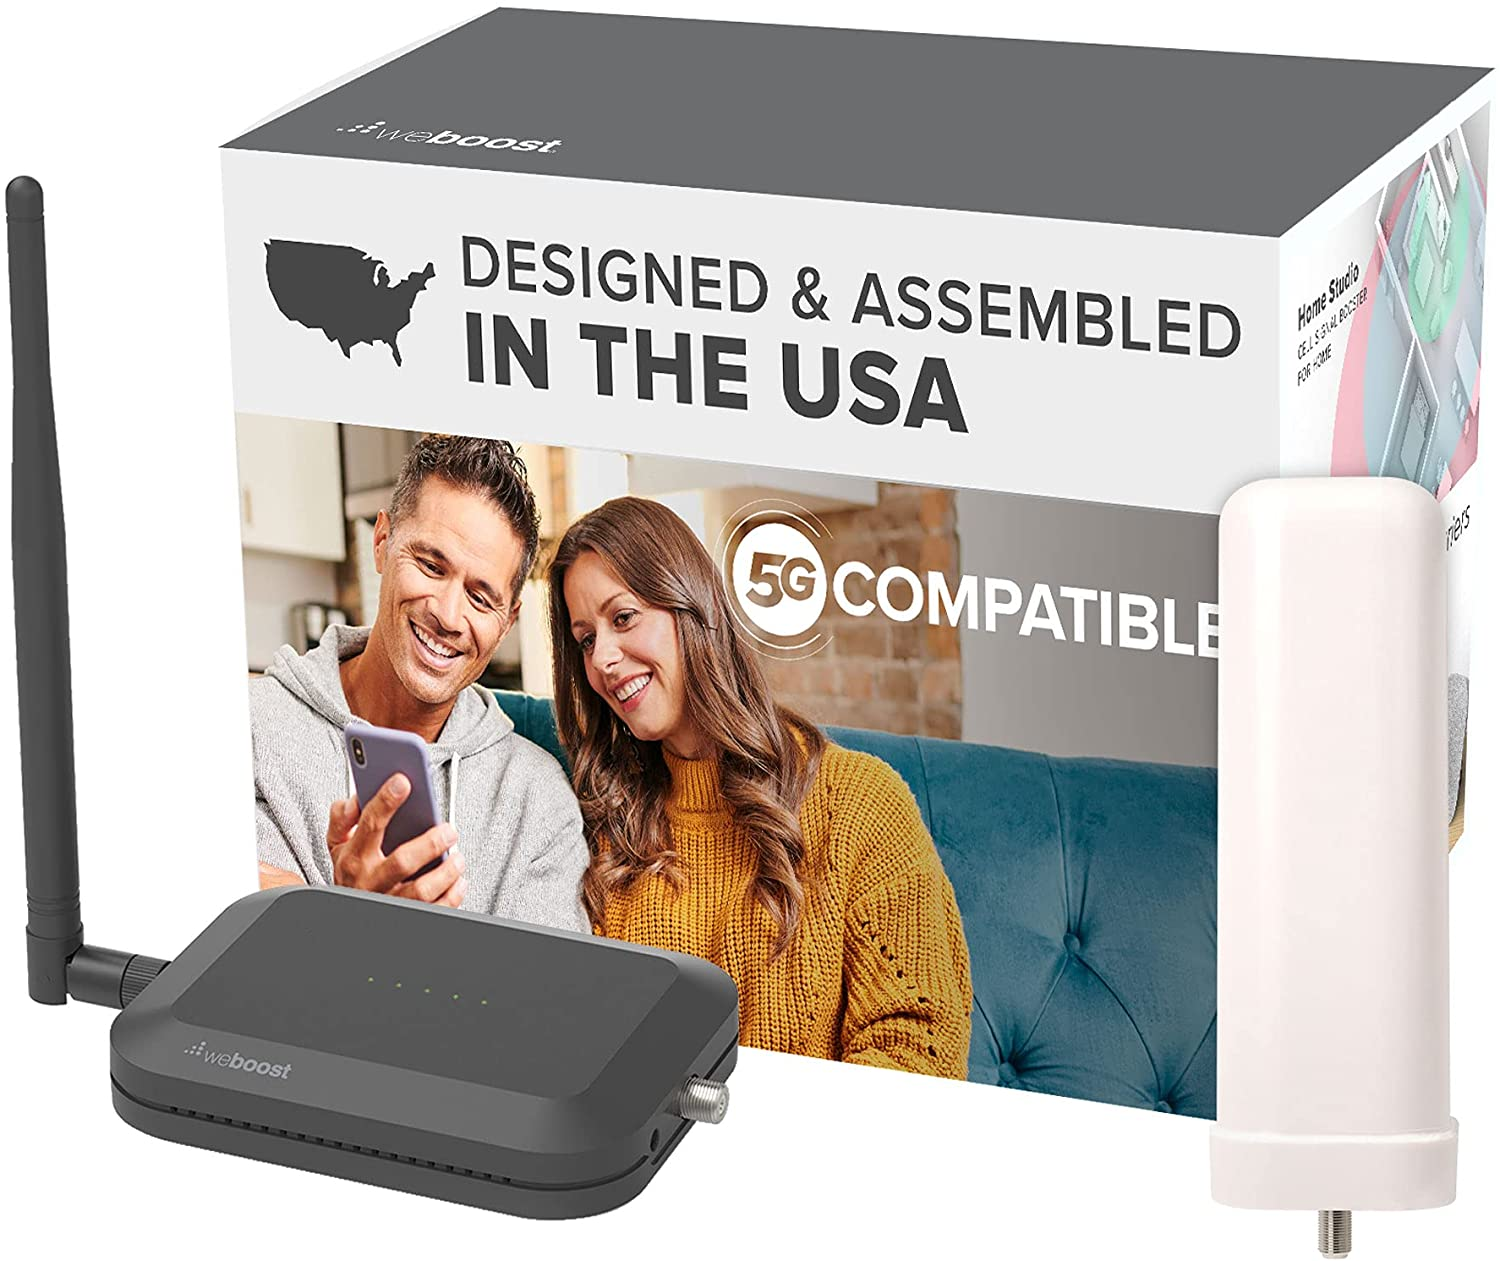 weBoost Home Studio Omni - Cell Phone Signal Booster | Boosts 4G LTE & 5G for all U.S. & Canadian Networks - Verizon, AT&T, T-Mobile & more | Made in the U.S. | FCC Approved (model 471166)